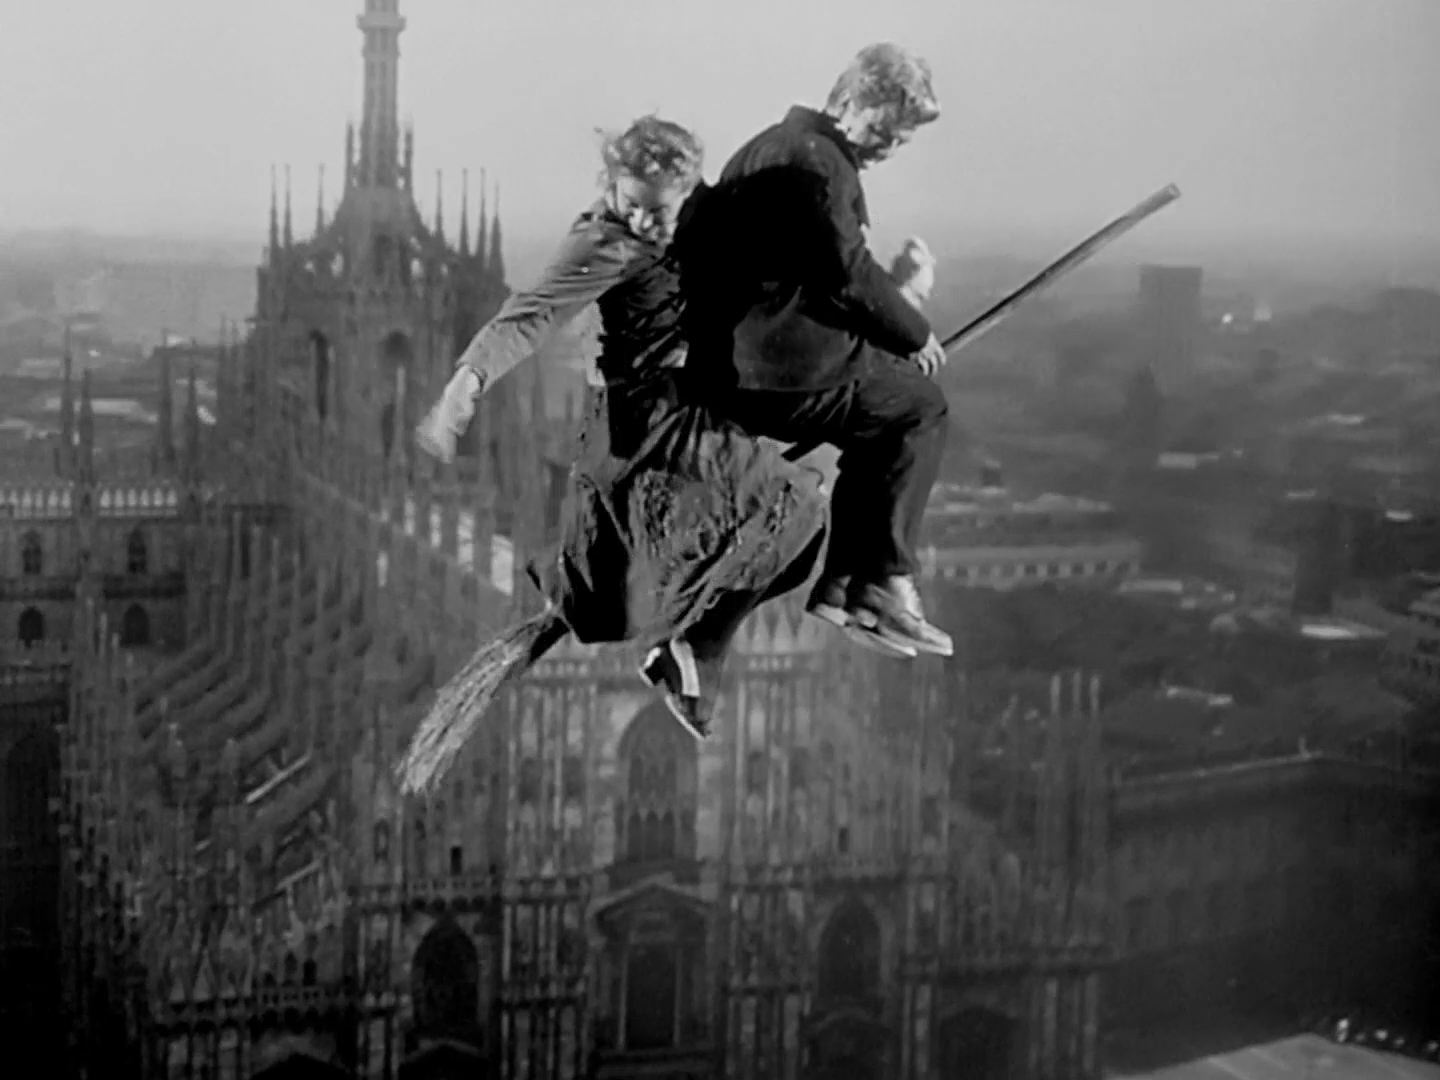 [By Vittorio De Sica (director) / Eraldo Da Roma (cinematographer) - Italian movie Miracolo a Milano (1951), Public Domain, https://commons.wikimedia.org/w/index.php?curid=89258532]